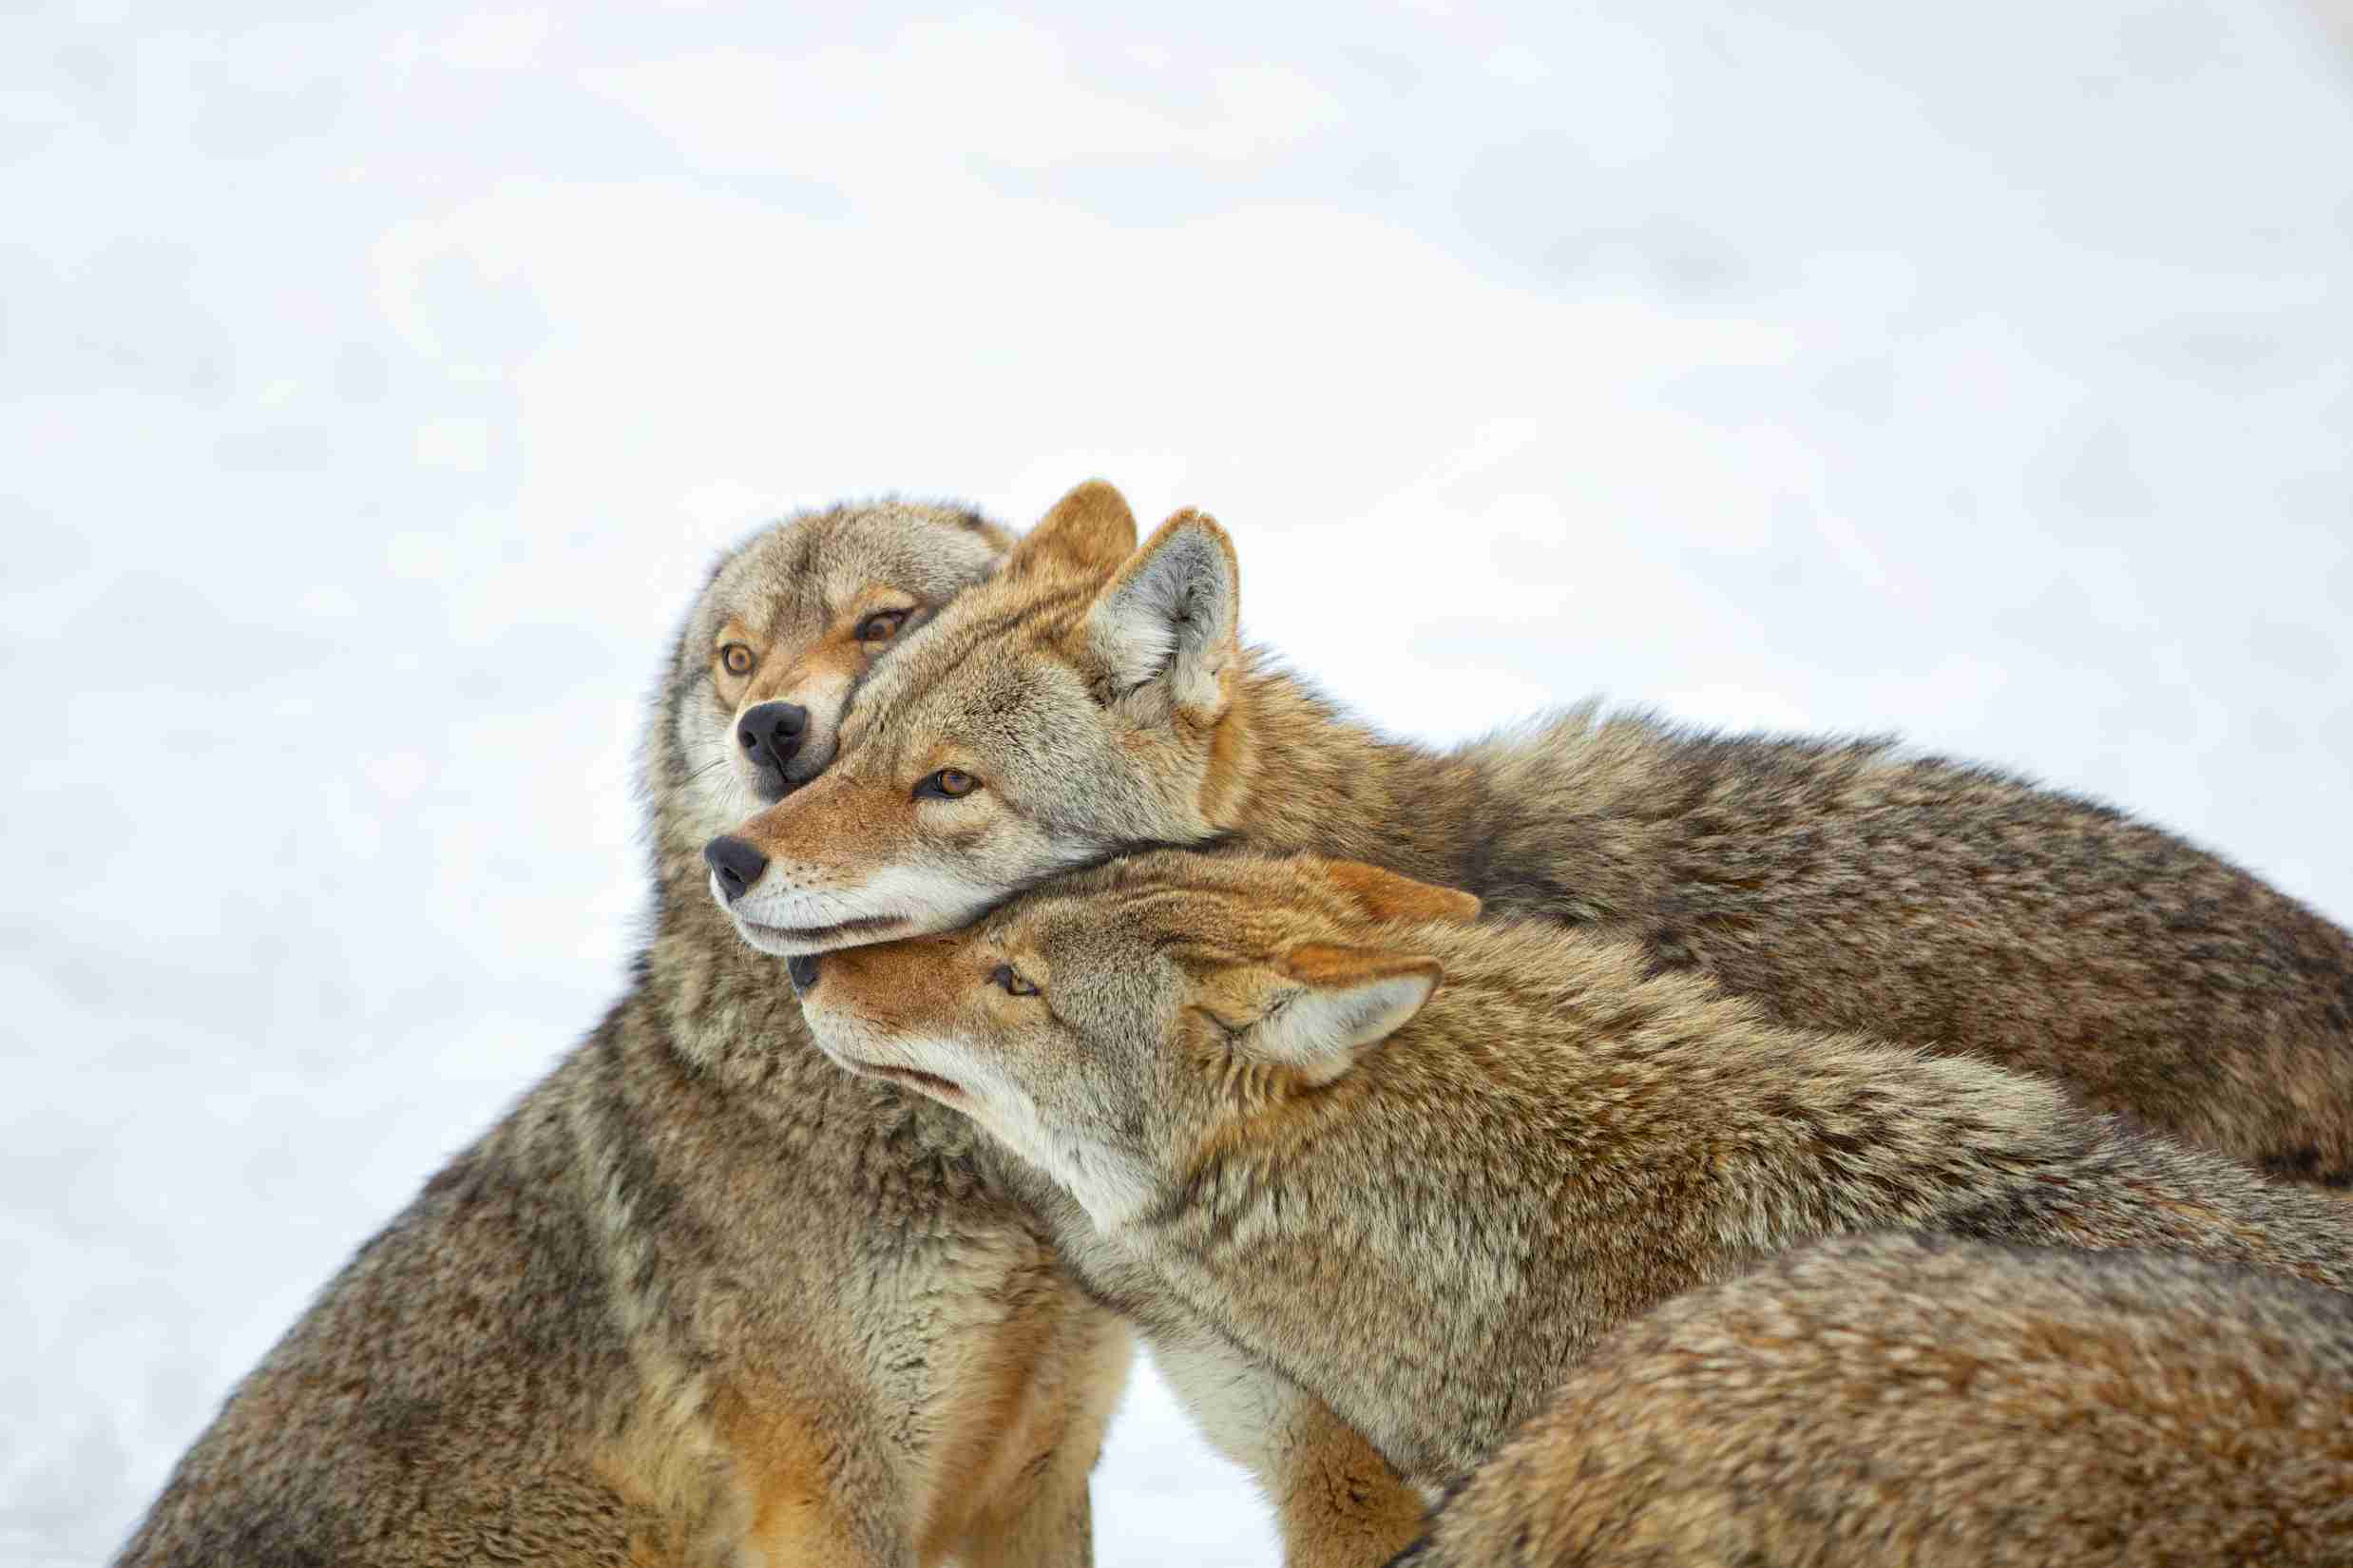 Coyotes are not as social as wolves, but they will act cooperatively to hunt and raise offspring.